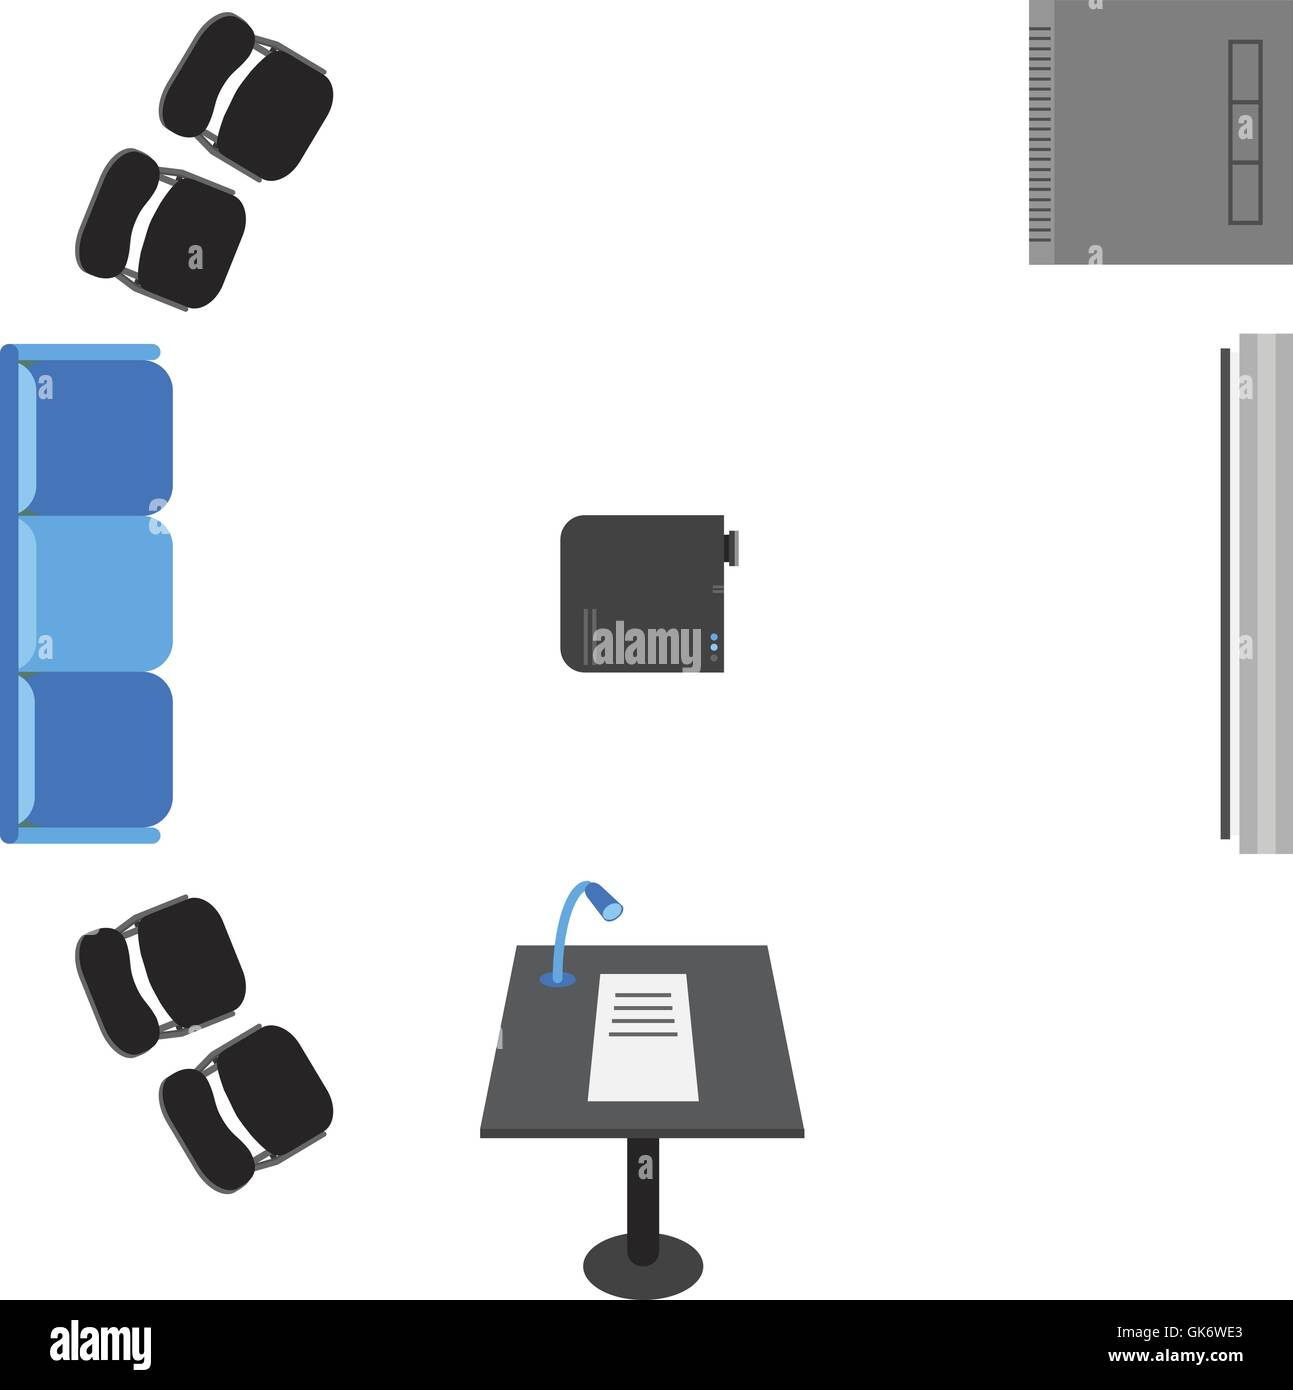 Sofa chair top view Vector Vector Set Of Icons For Presentation Top View Sofa Chairs Projector Server Board Bollard Alamy Vector Set Of Icons For Presentation Top View Sofa Chairs Stock